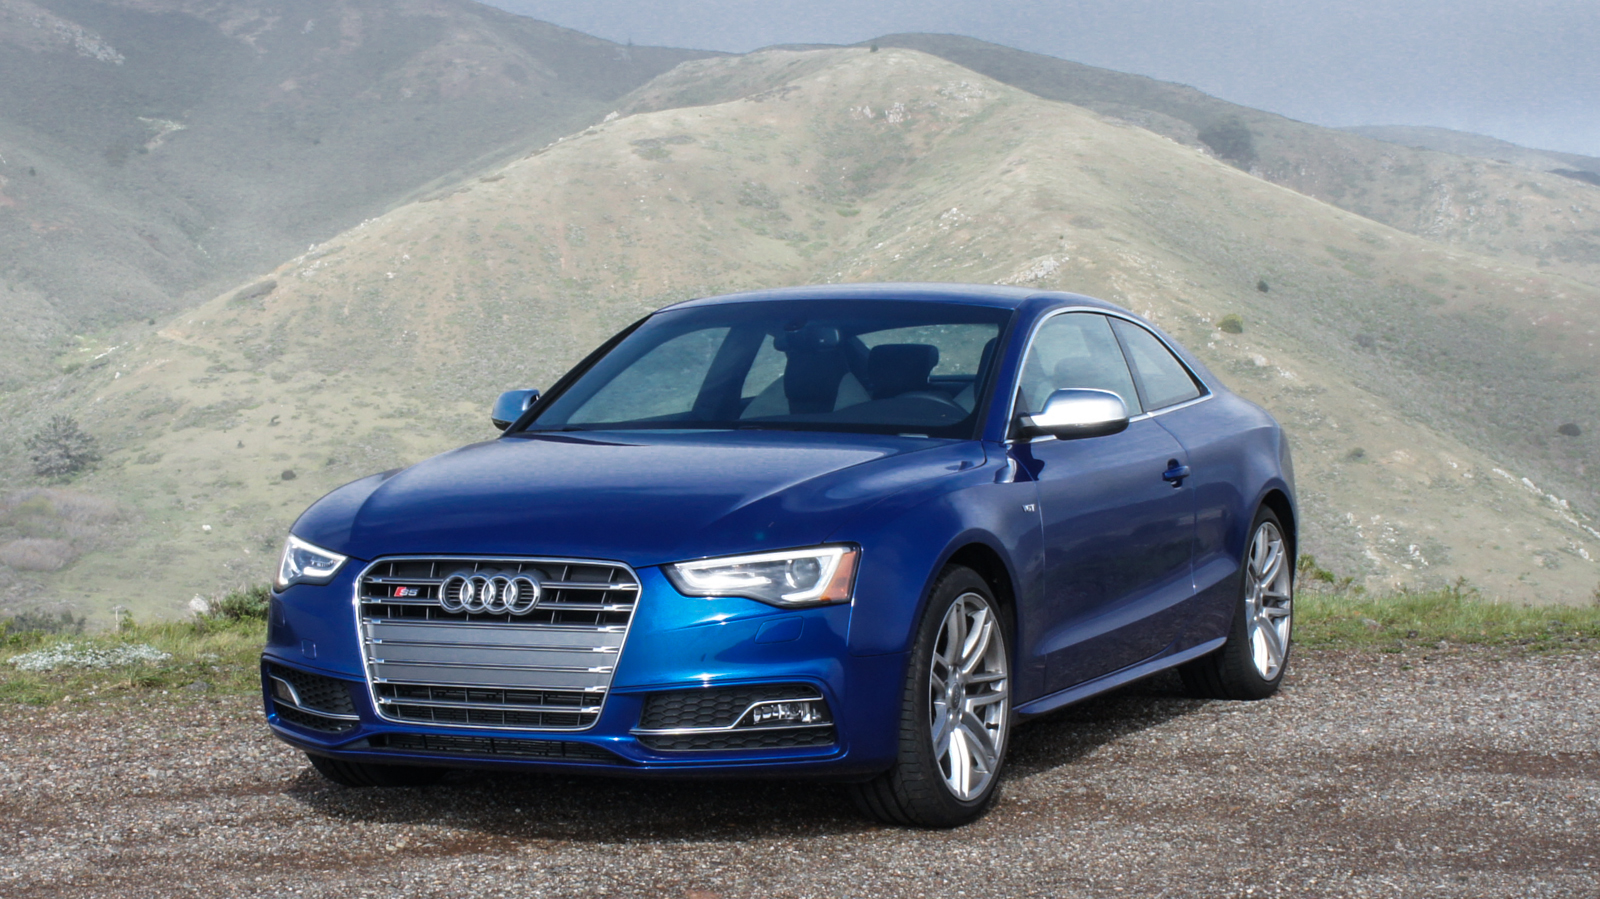 2015 audi s5 review cnet. Black Bedroom Furniture Sets. Home Design Ideas